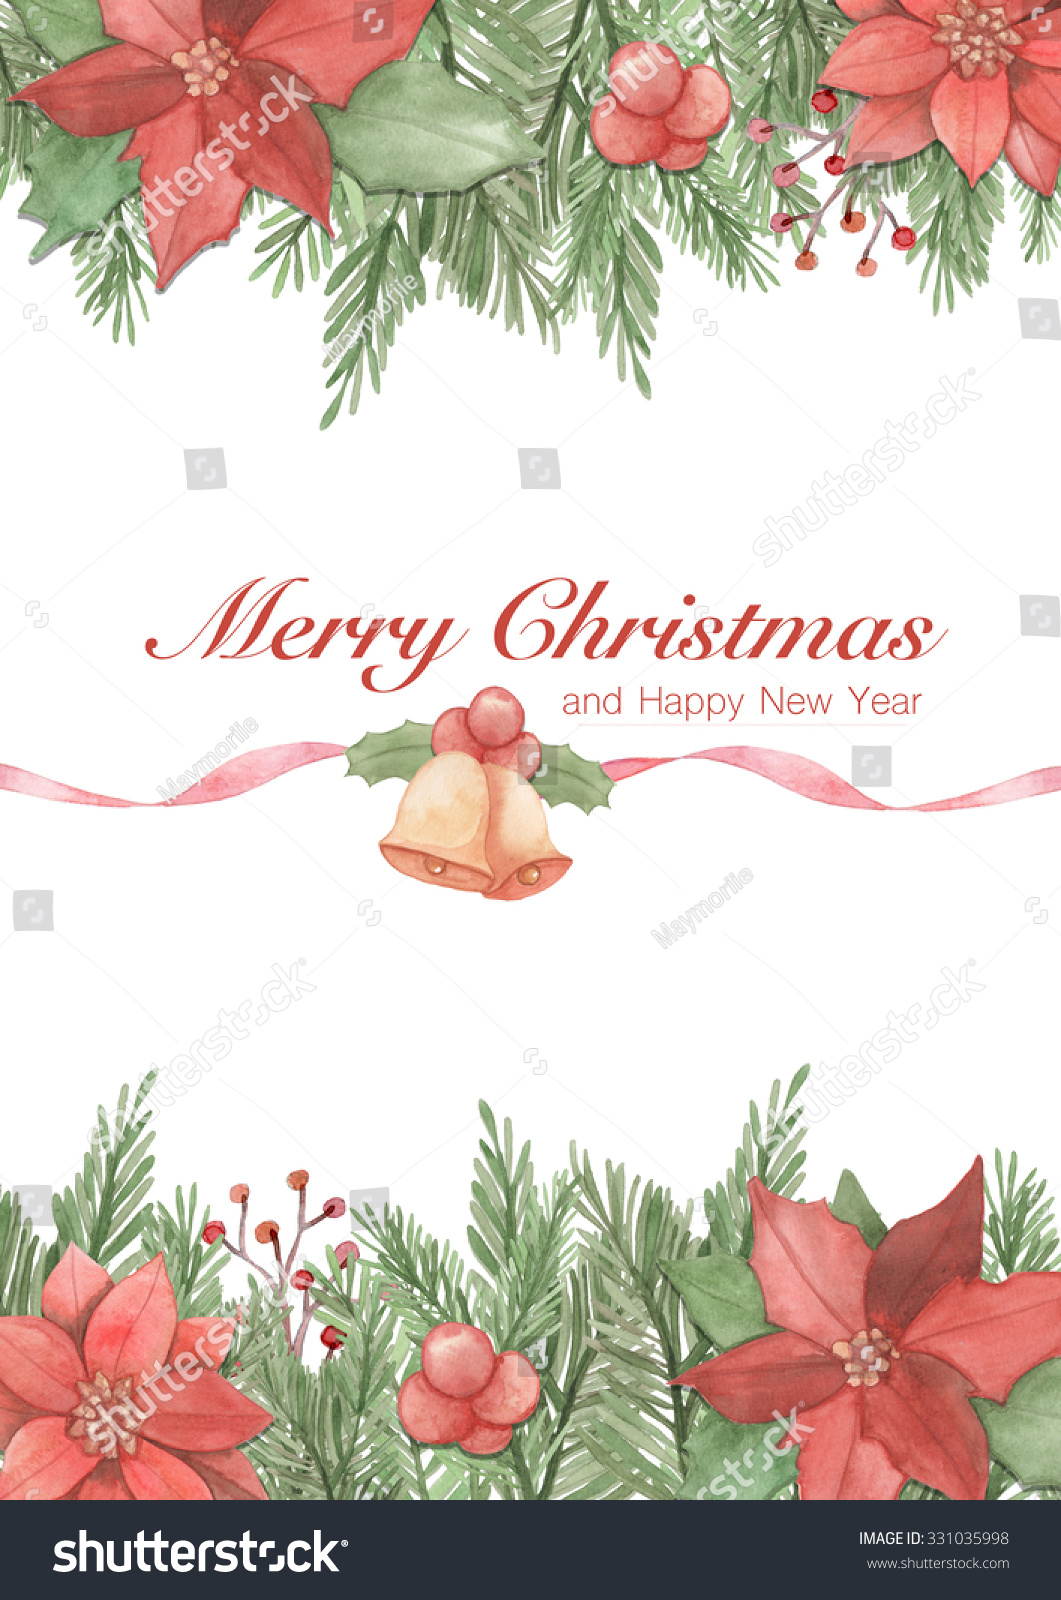 Royalty Free Stock Illustration of Christmas Greeting Card Merry ...